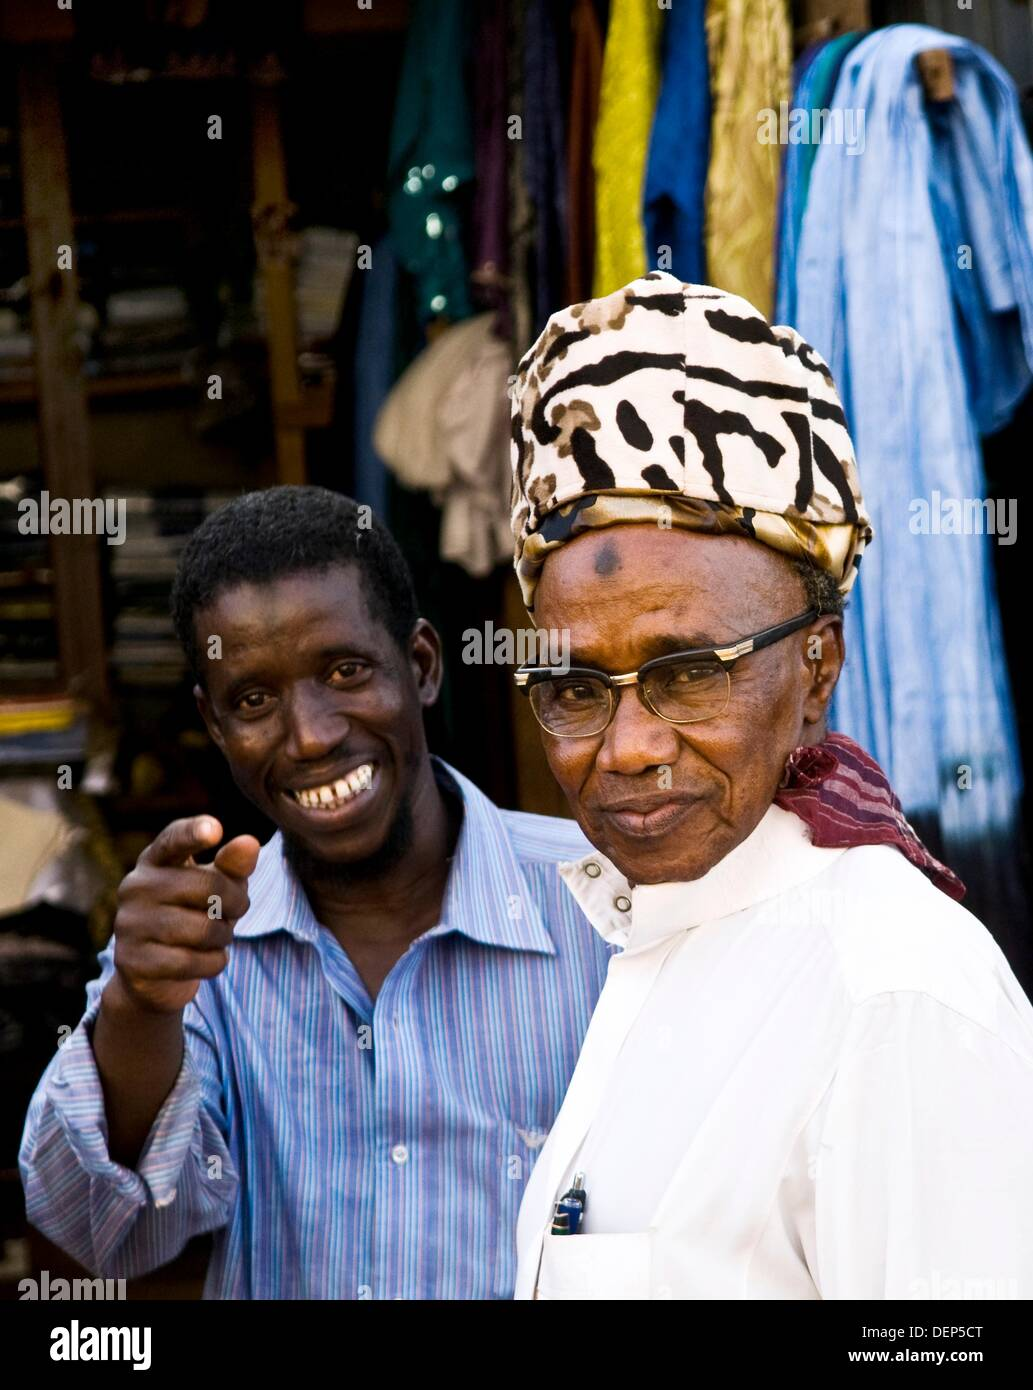 Smile please! market scenes in Burkina Faso. - Stock Image